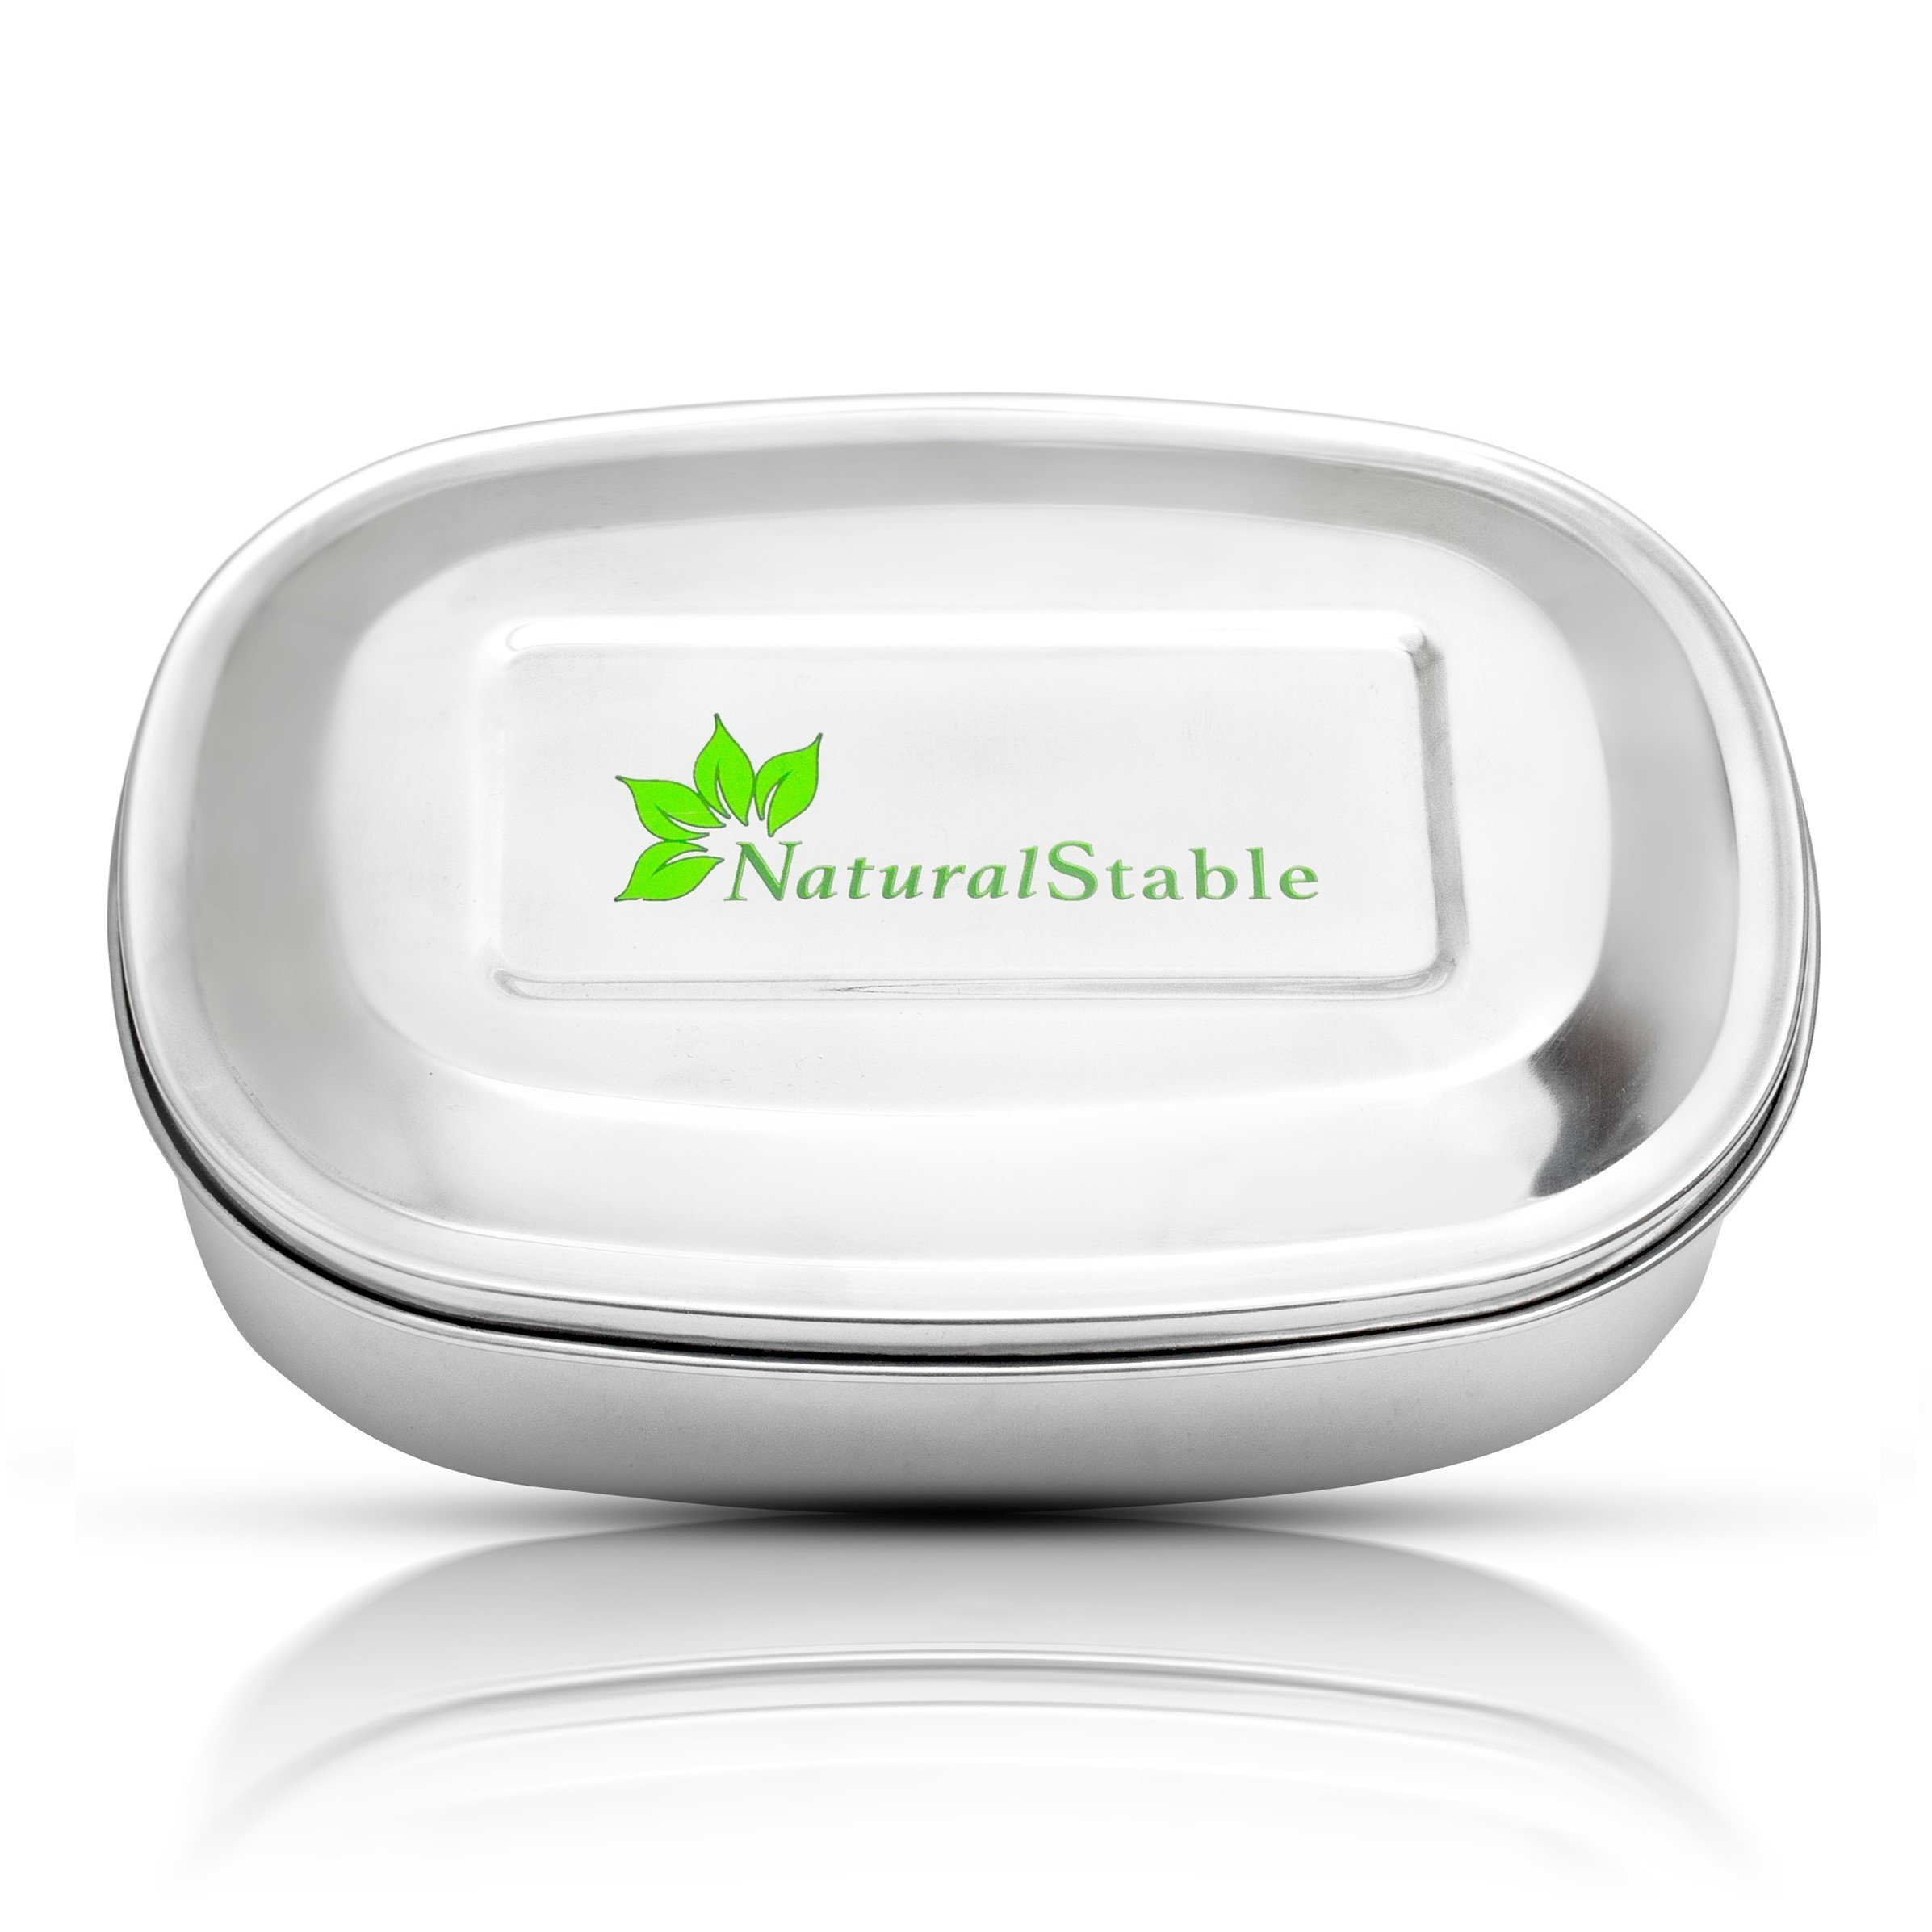 Stainless Steel Lunch Box - Bento Lunchbox for Kids or Adults - 550ml , 1L Sizes With Compartments - 100% Eco friendly - Dishwasher Safe- No Rusting - 100% BPA Free - 3 E-books Included